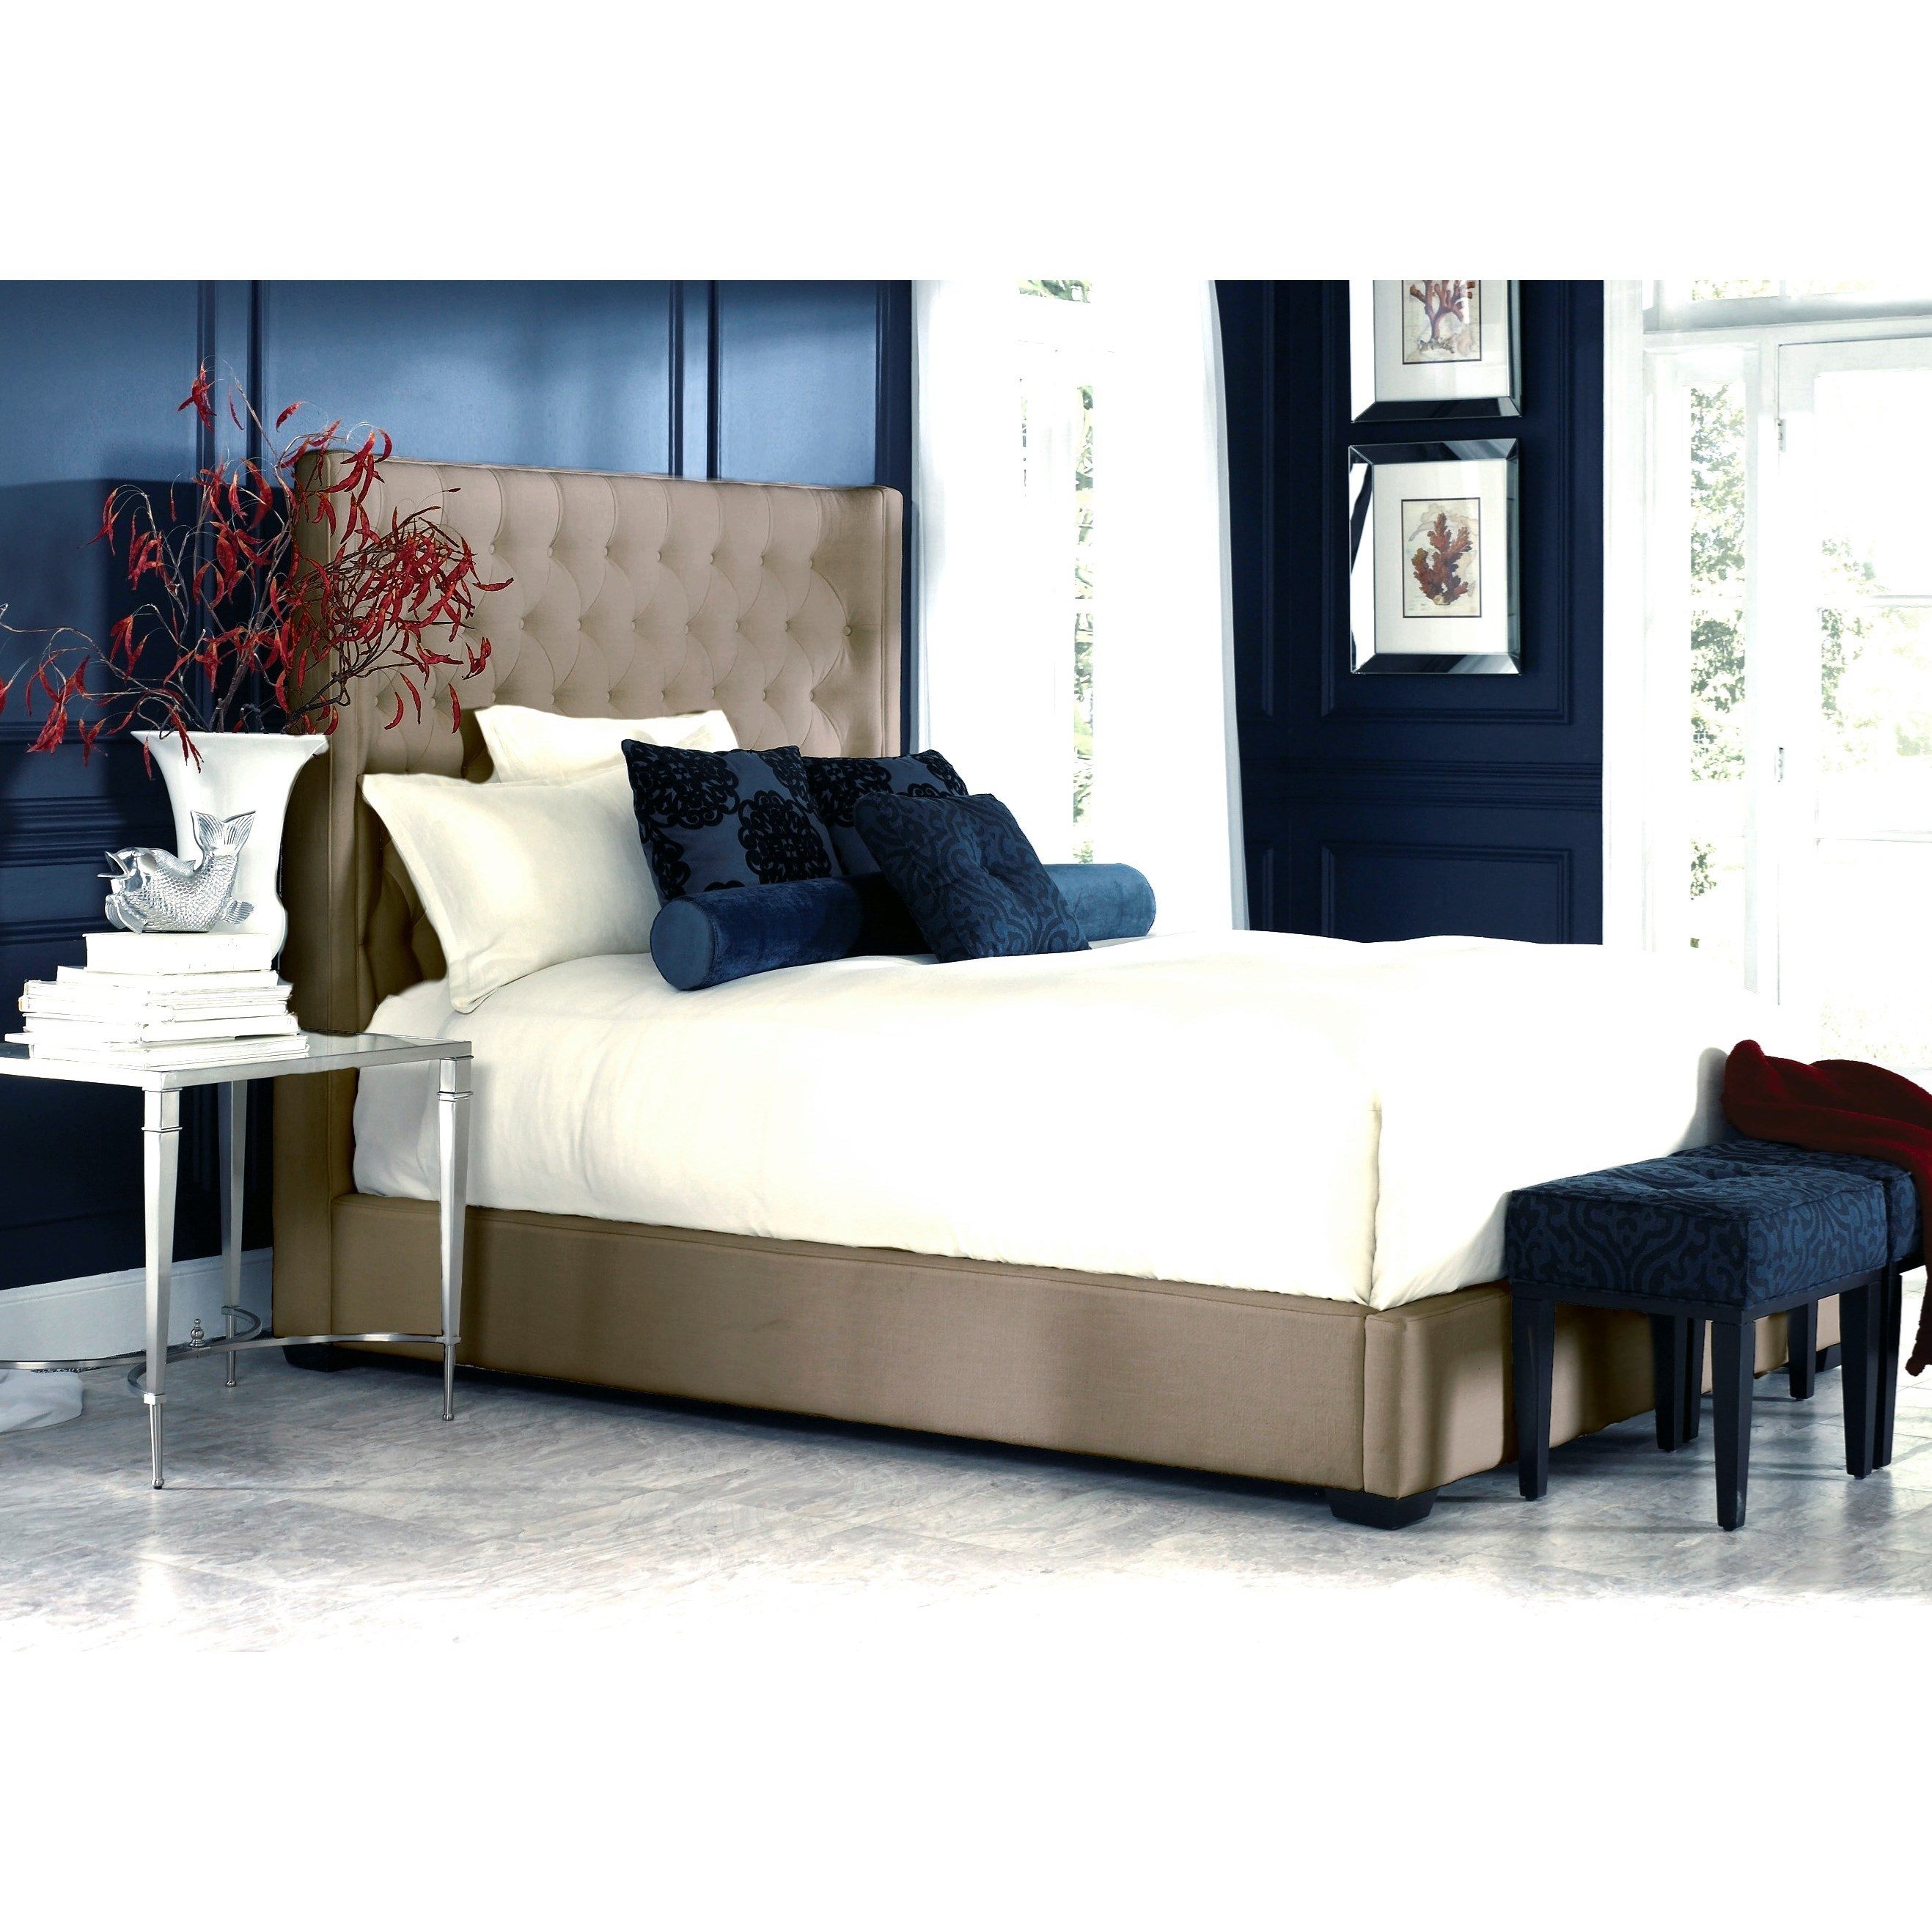 Carly California King Upholstered Storage Bed by Jonathan Louis at Fashion Furniture